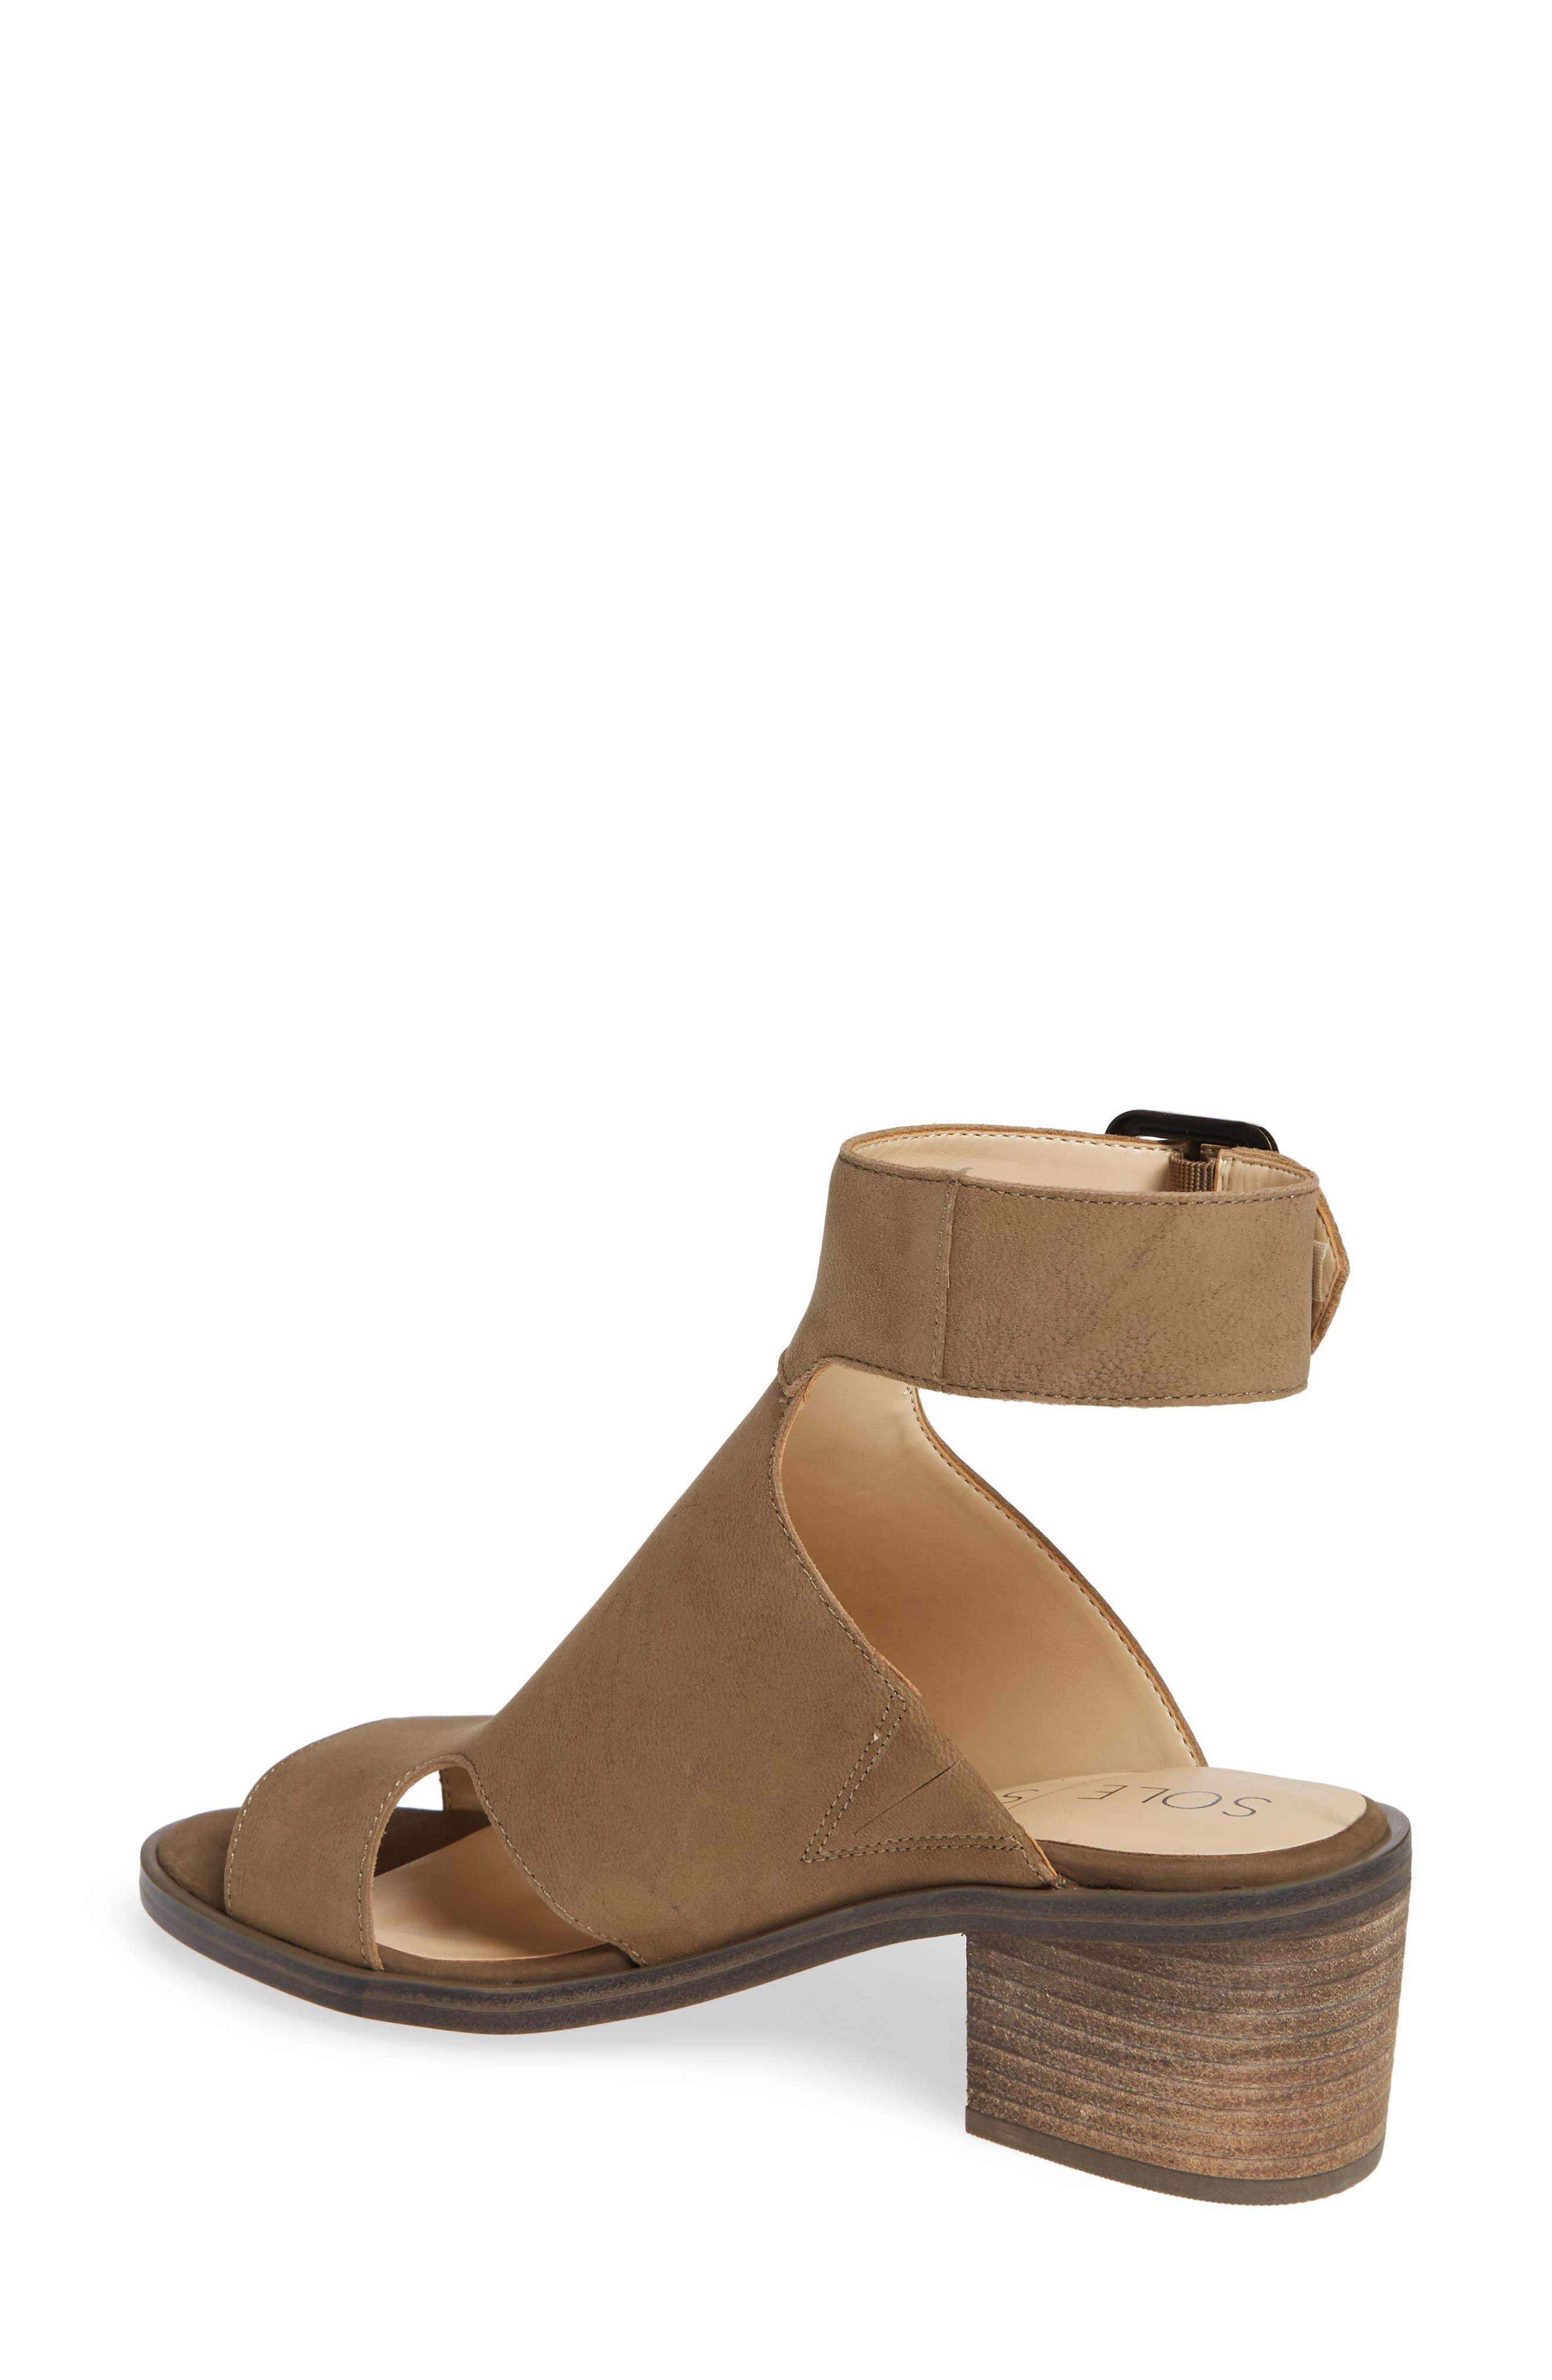 Tally Ankle Cuff Sandal,                             Alternate thumbnail 2, color,                             343